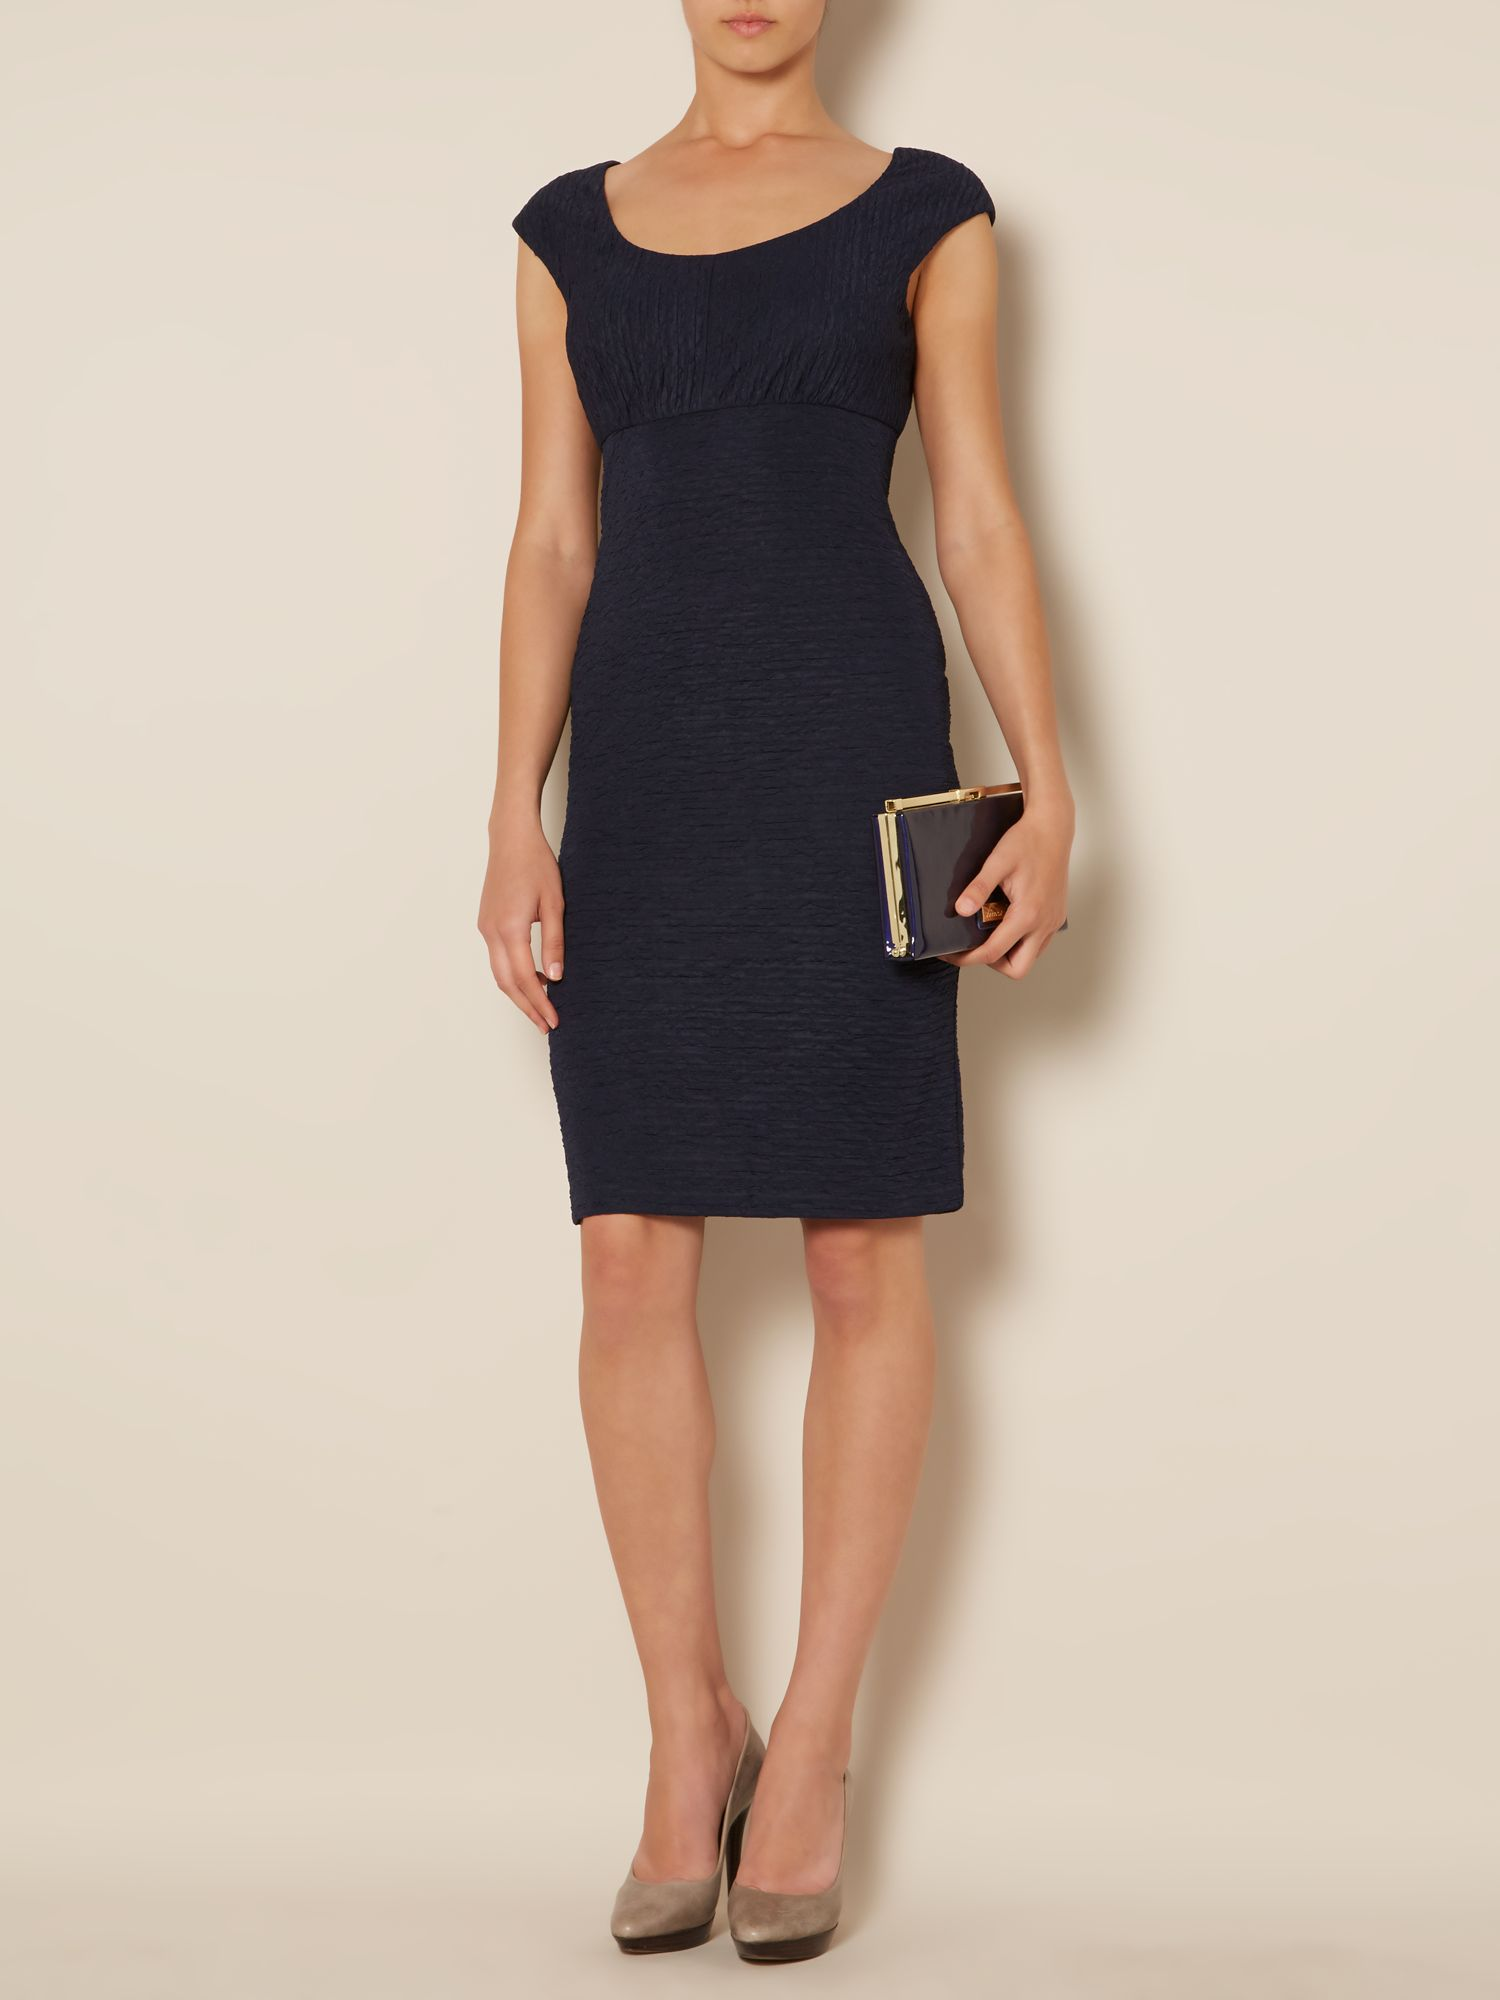 Textured scoop neck dress